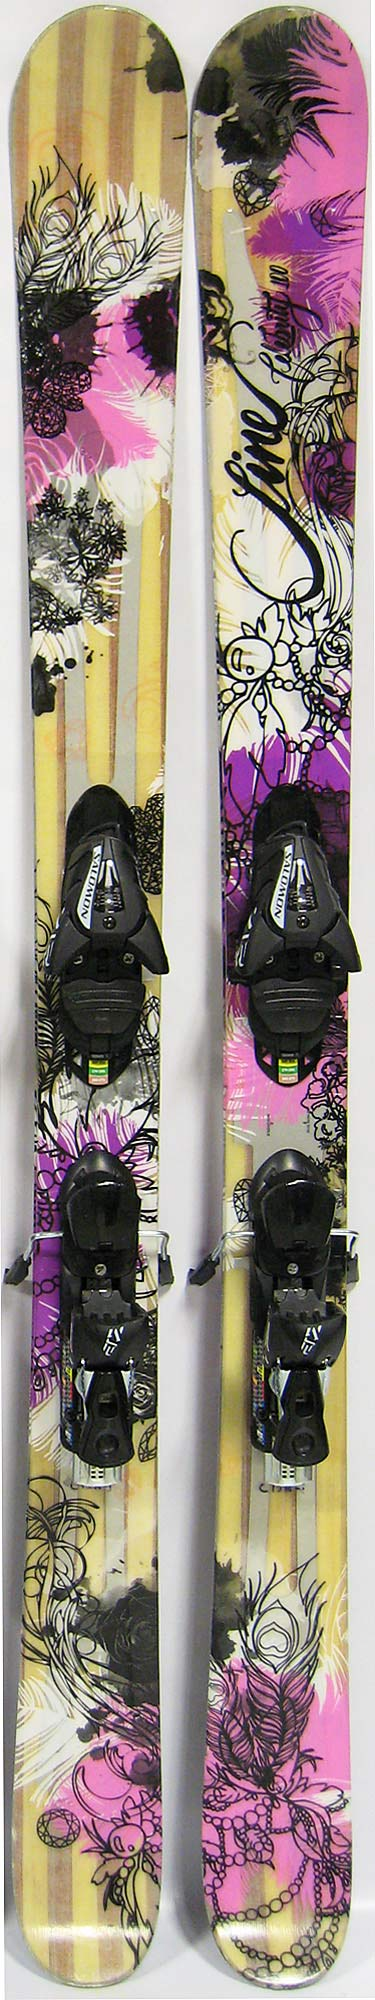 Topsheets of 2012 Line Celebrity 100 Skis For Sale